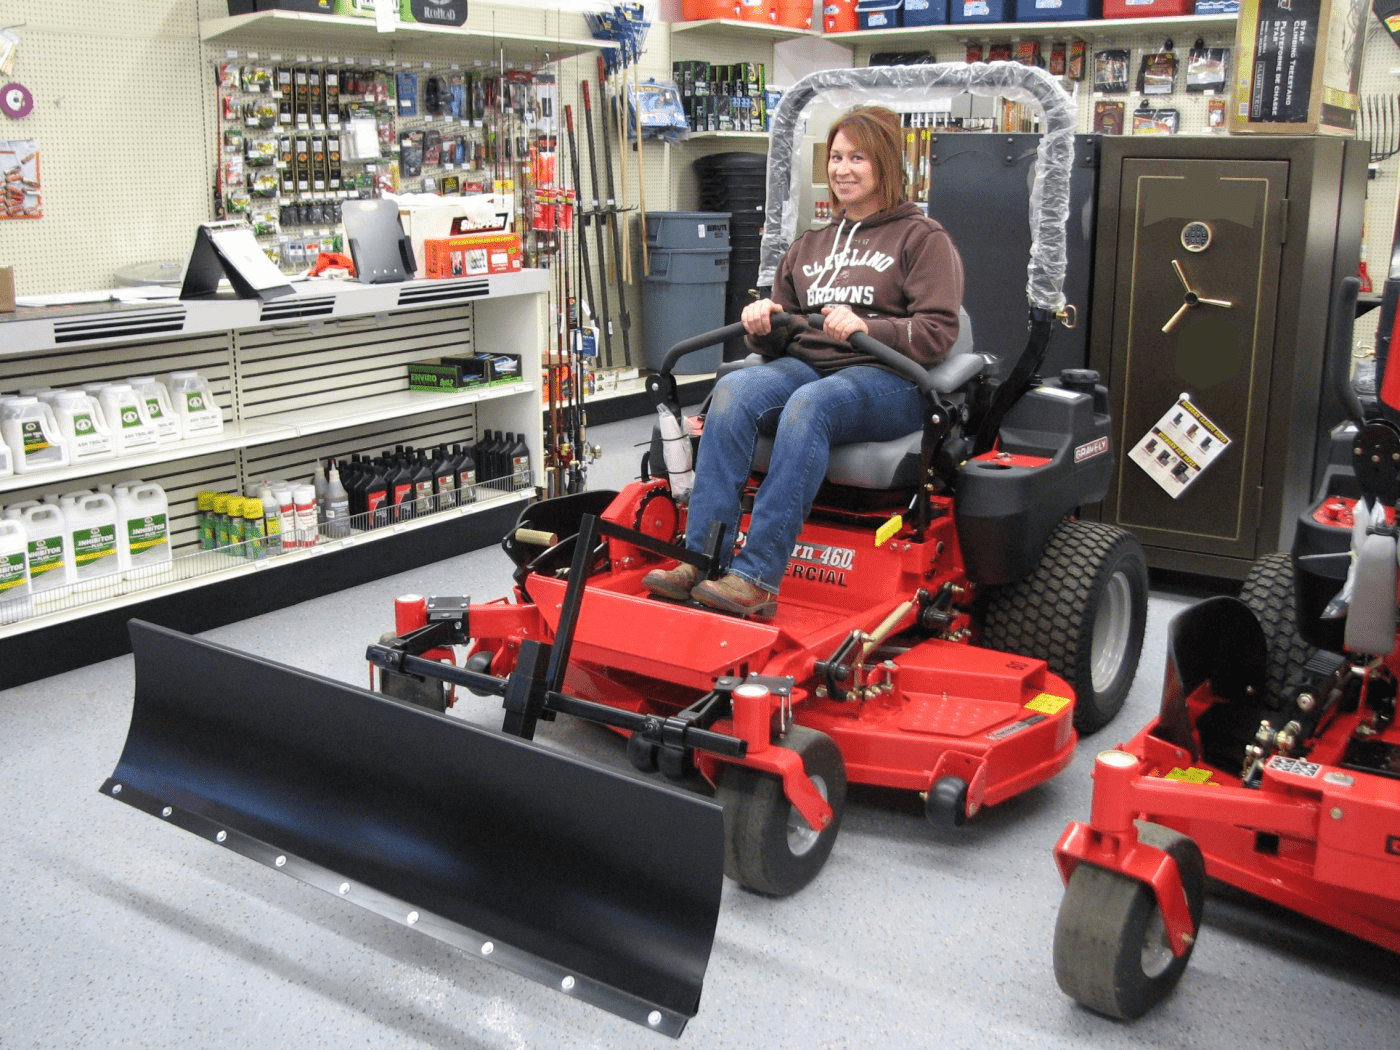 Zero Turn Mower 5 ft. Snow Plow with Universal Mounting Bar System